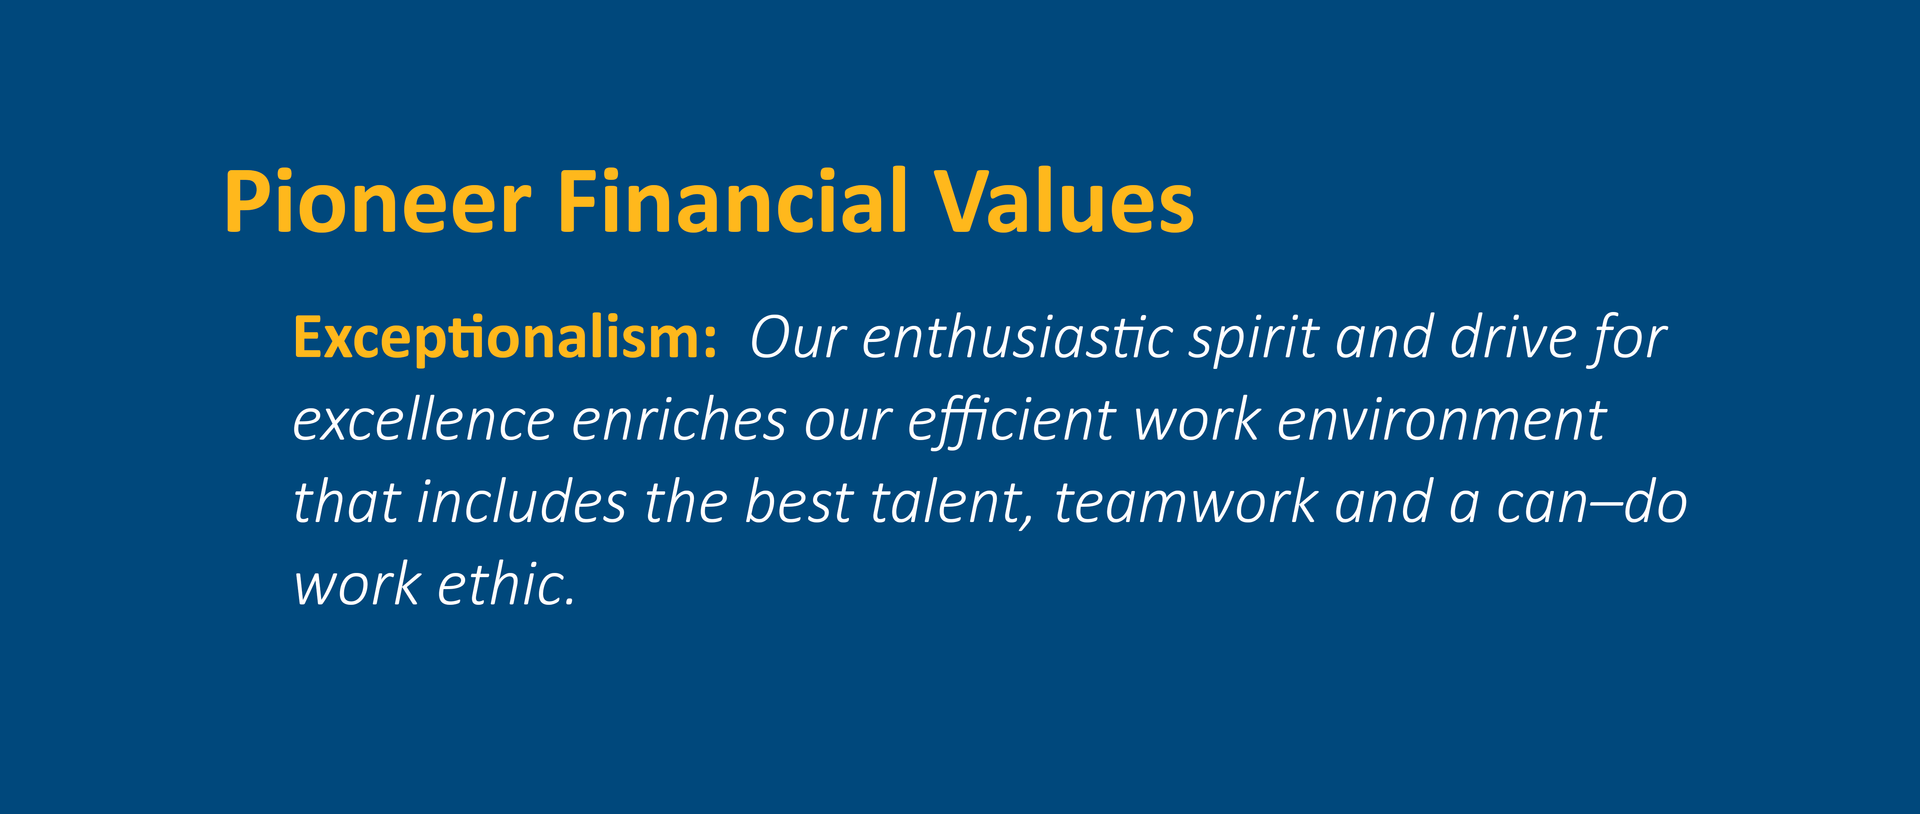 Exceptionalism:  Our enthusiastic spirit and drive for excellence enriches our efficient work environment that includes the best talent, teamwork, and a can–do work ethic.